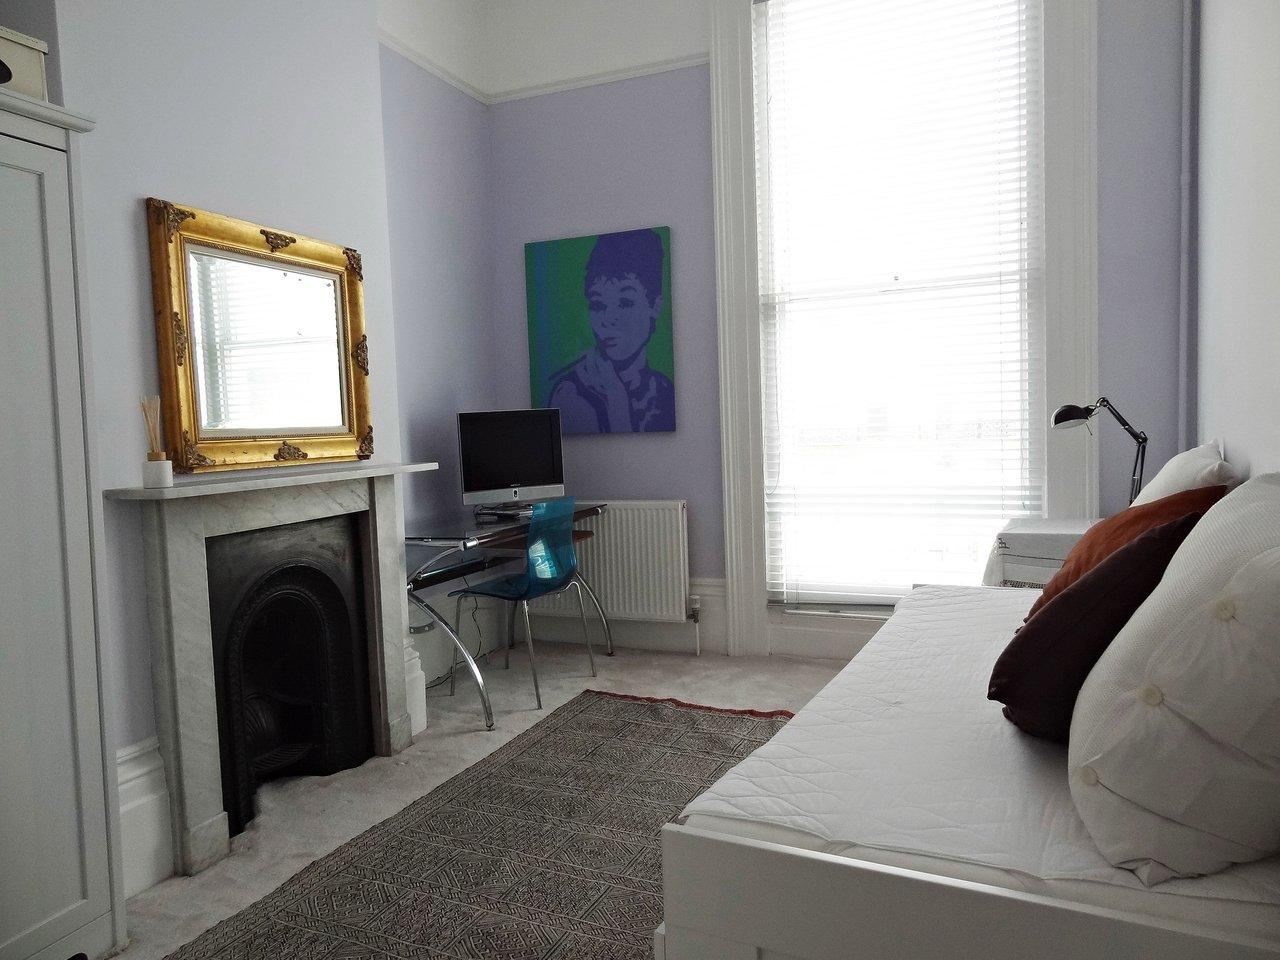 The Grand Seafront Apartment, Brighton & Hove Images - 28